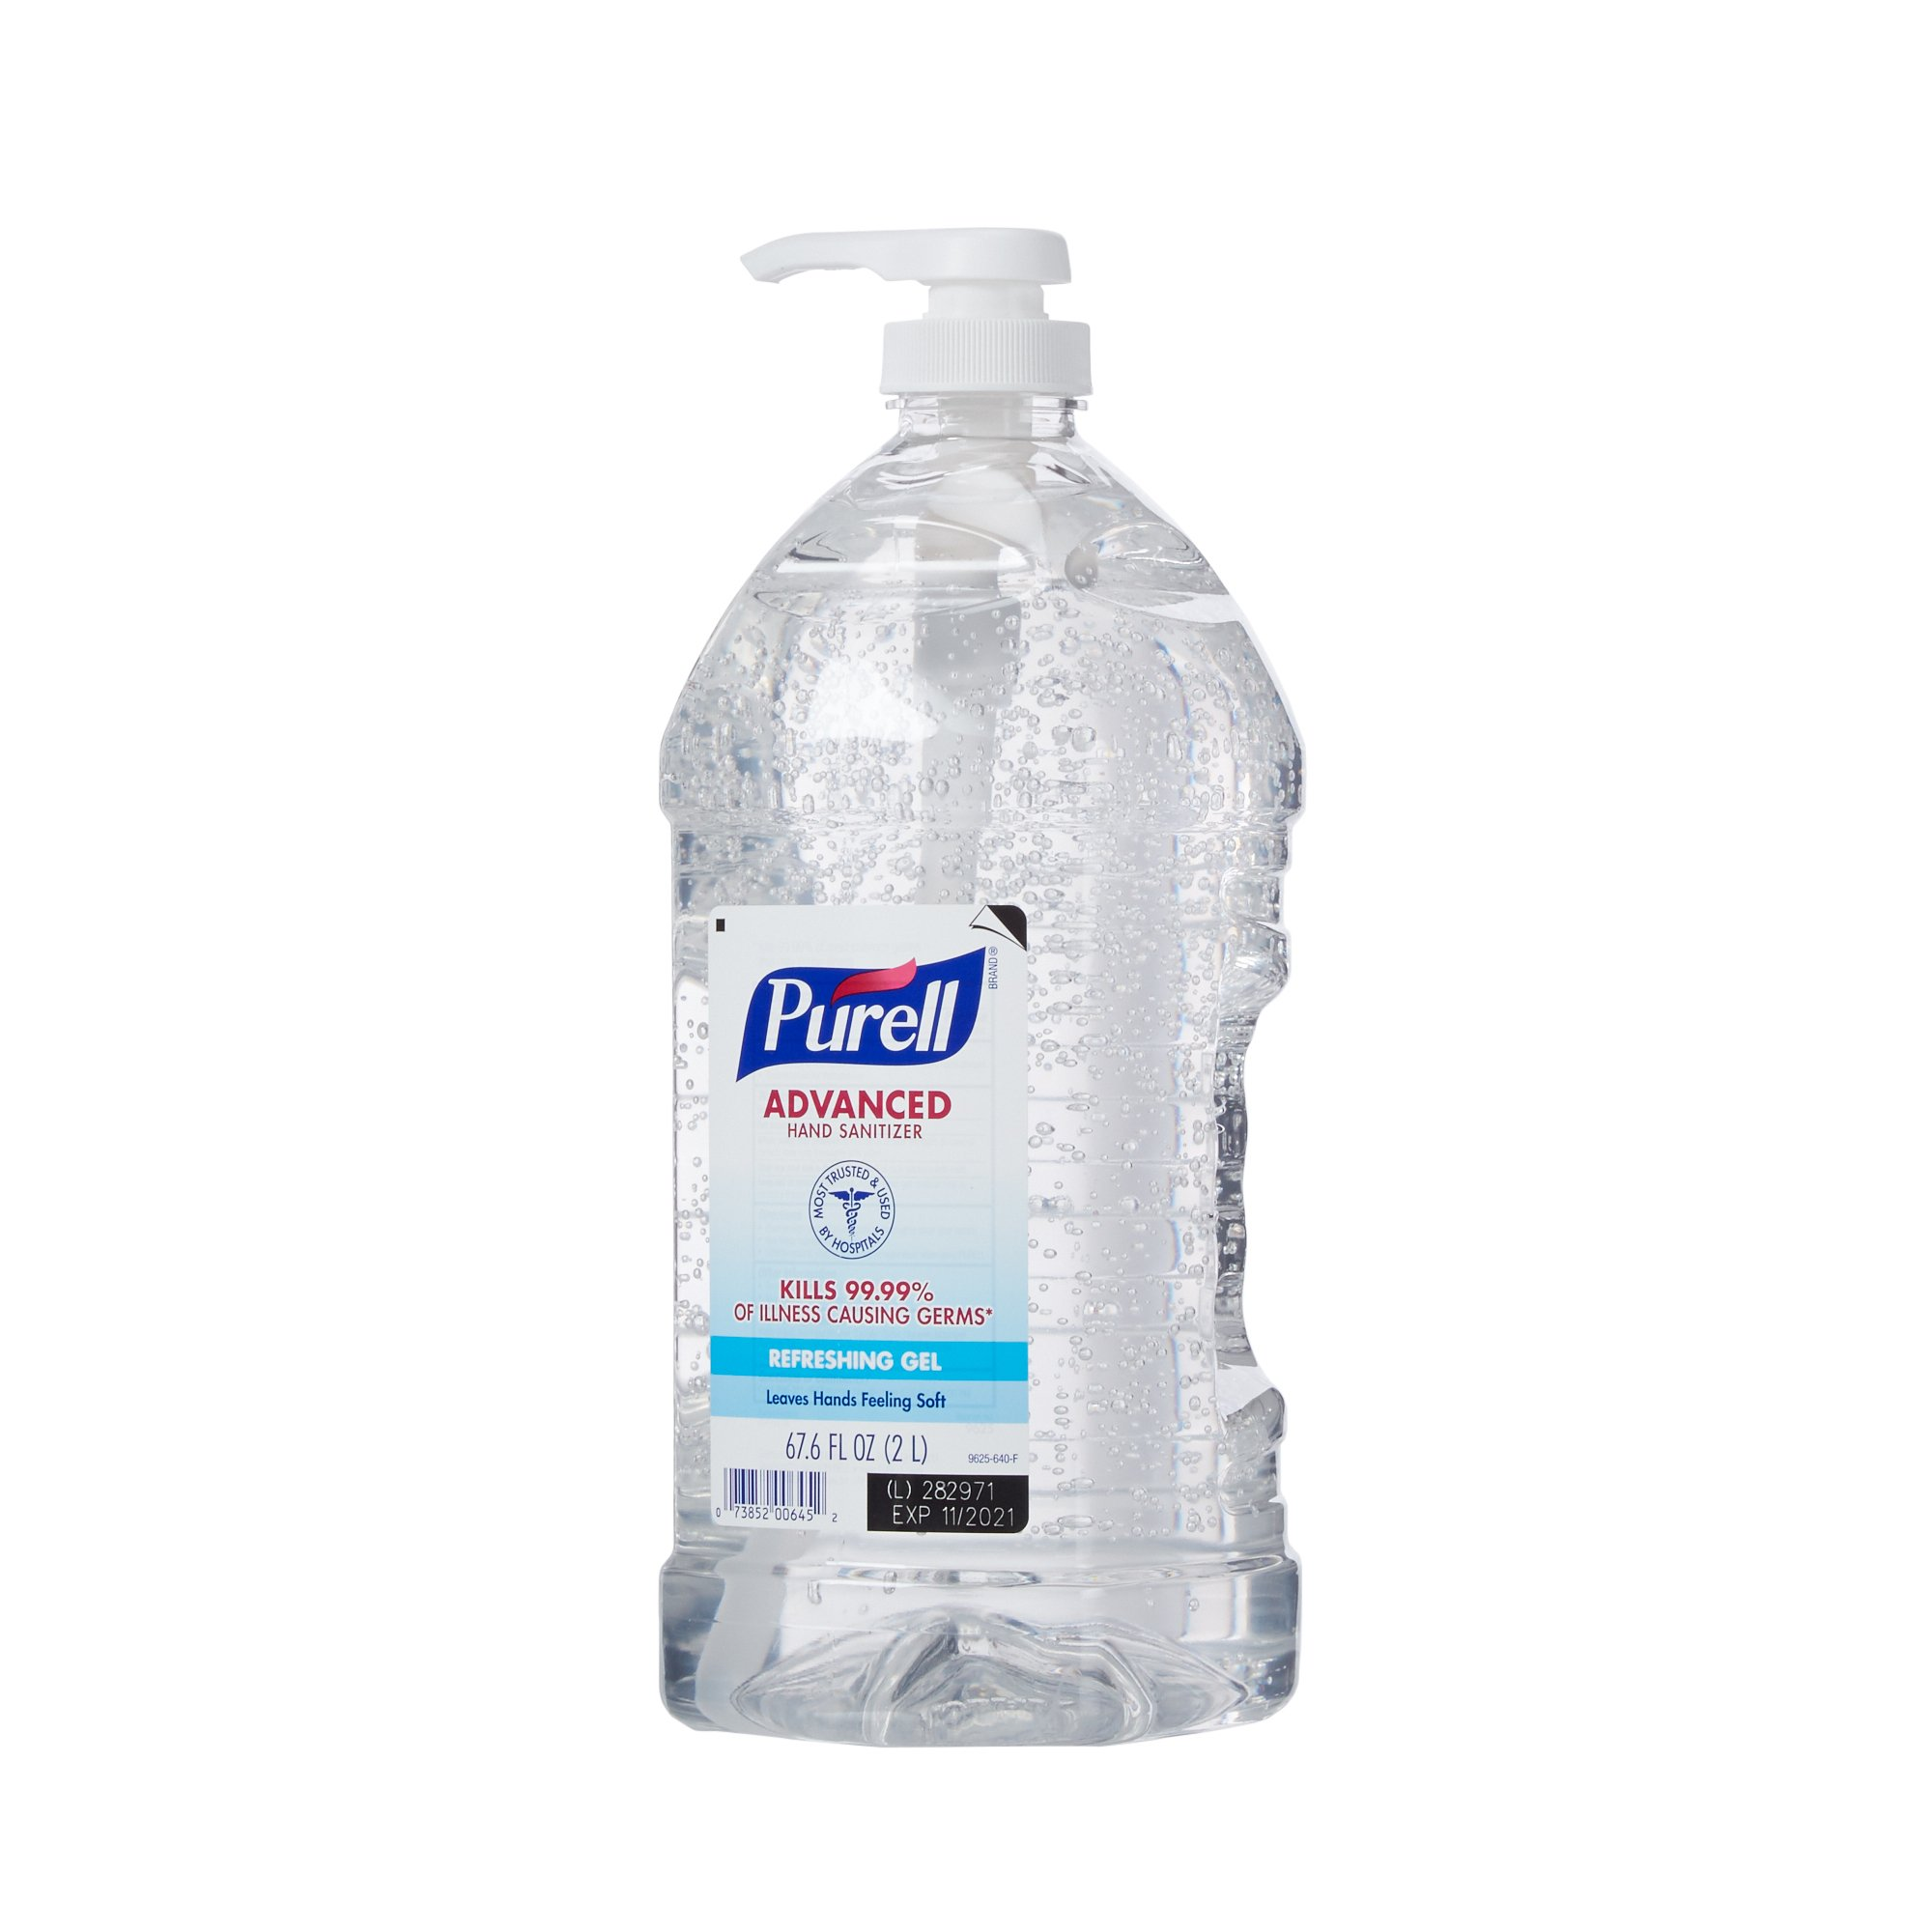 Purell Hand Sanitizer 2,000 mL Ethyl Alcohol Gel Pump Bottle, 9625-04 - Case of 4